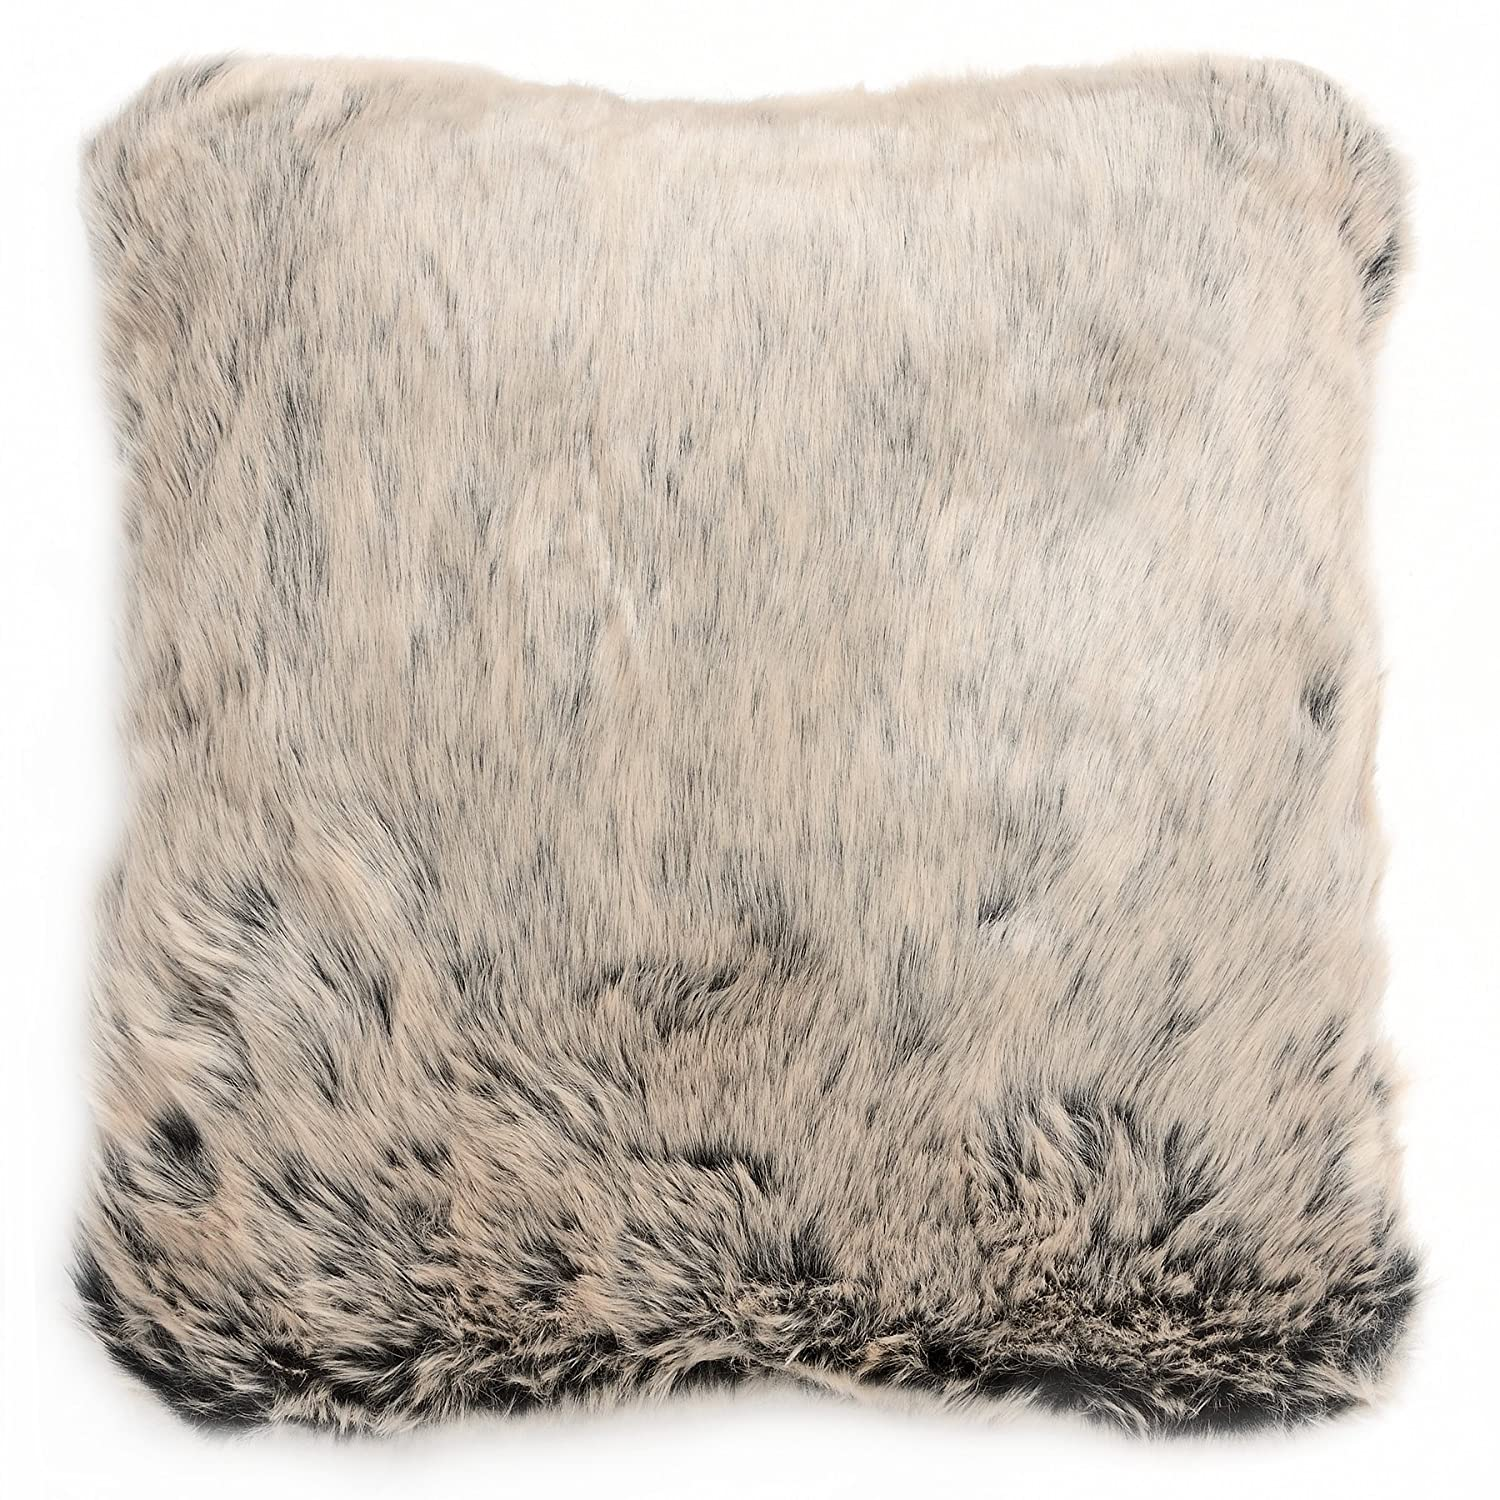 Hill Interiors Faux Fur Cushion (15.7in x 15.7in) (White) UTHI1773_1